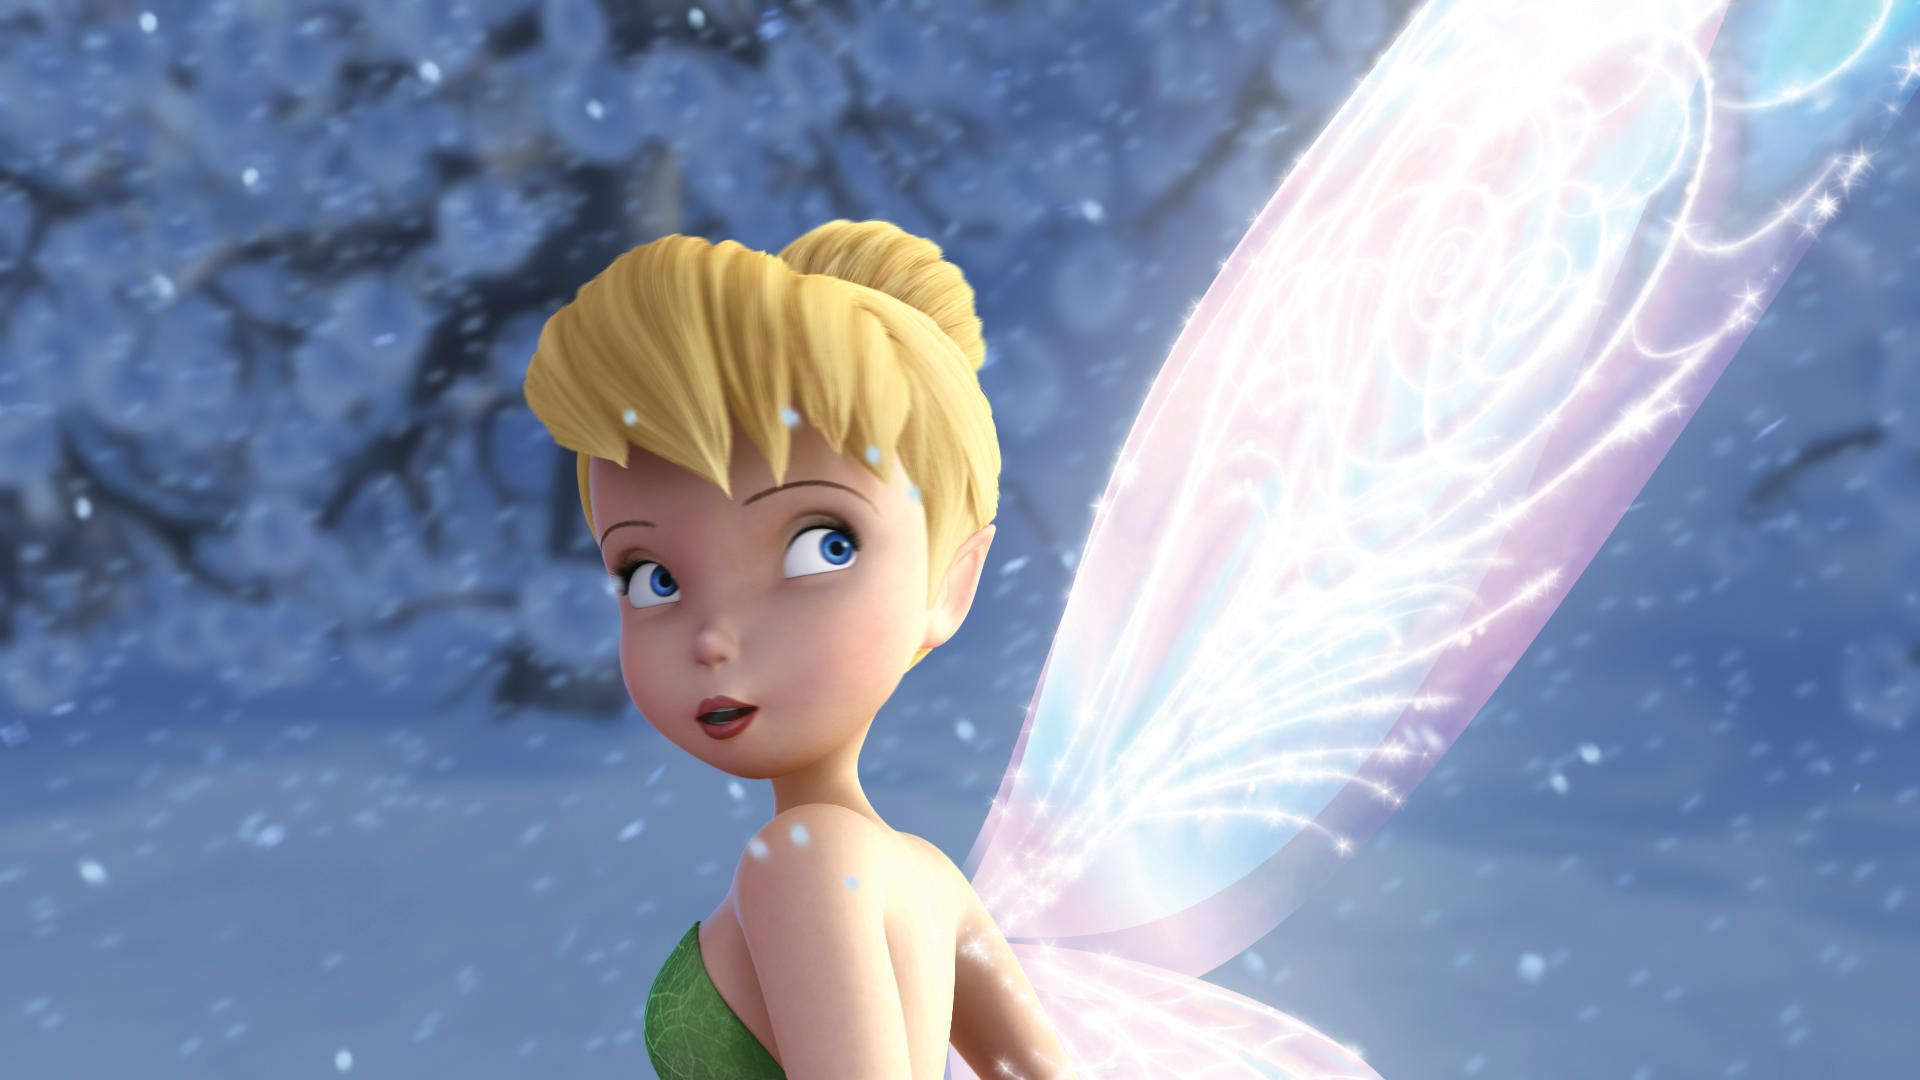 Secret Of The Wings Tinkerbell Pictures Tinkerbell Wallpaper Tinkerbell